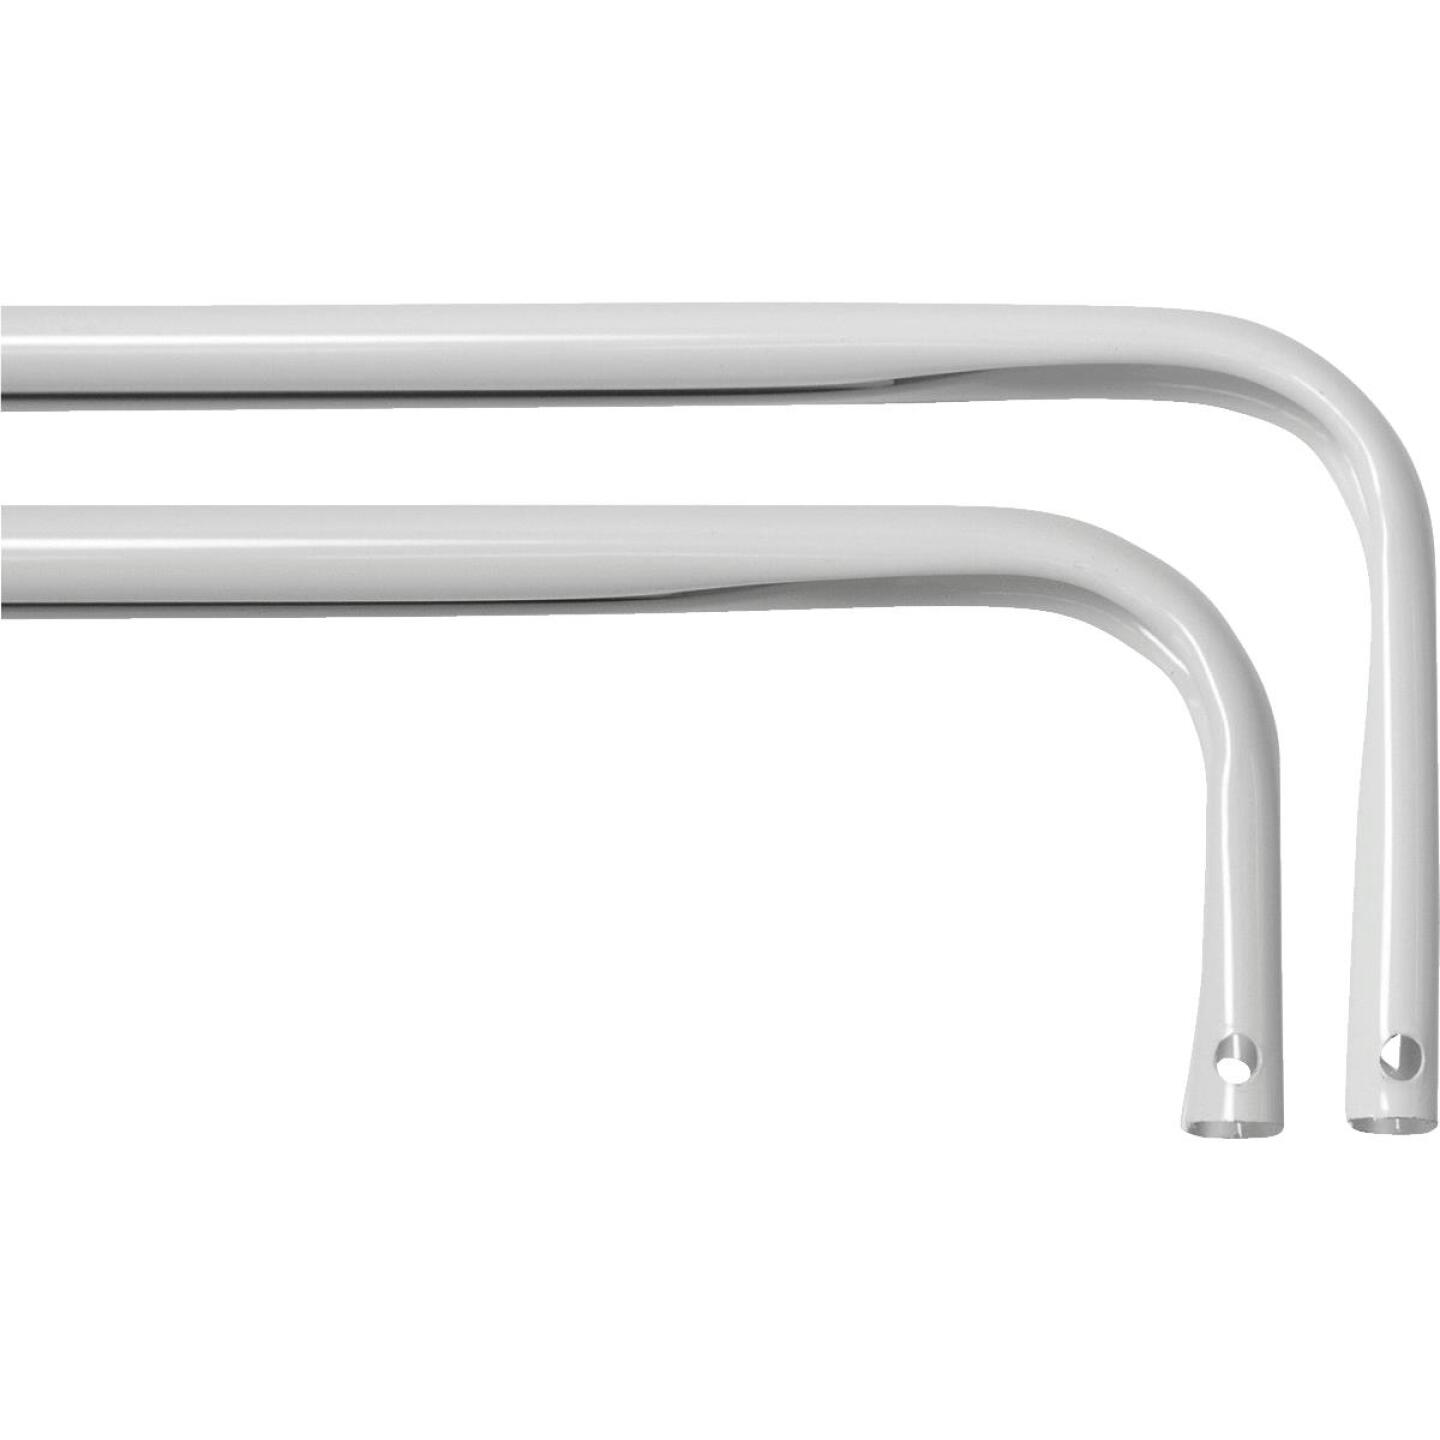 Kenney 48 In. To 86 In. 2 In. Double White Curtain Rod Image 1